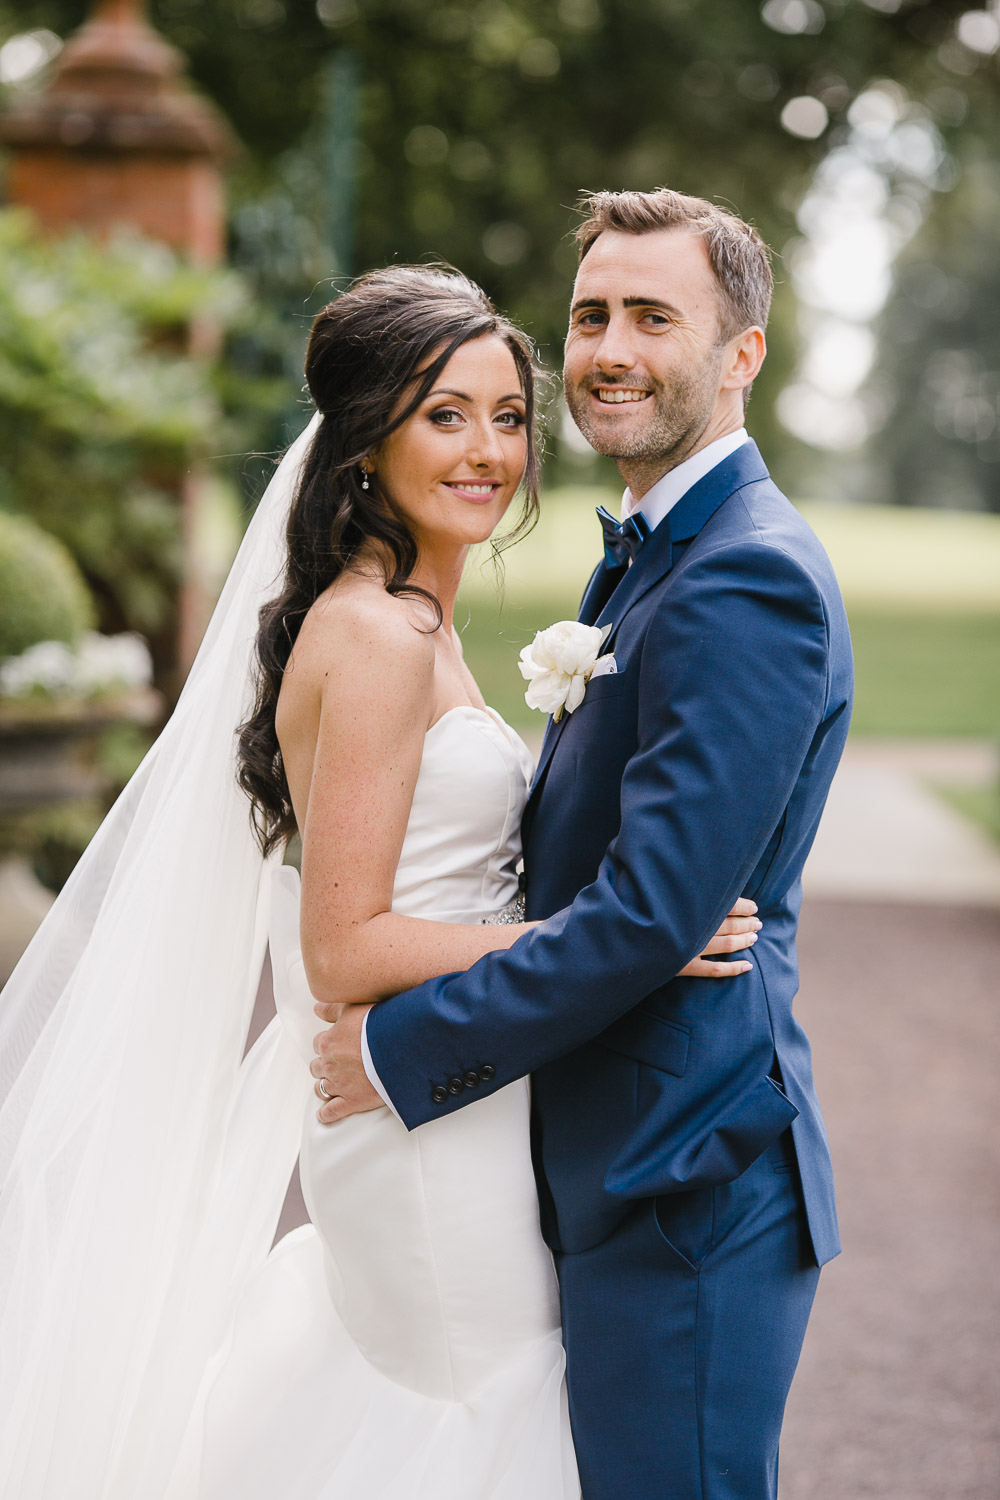 romantic bride and groom photo tankardstown wedding